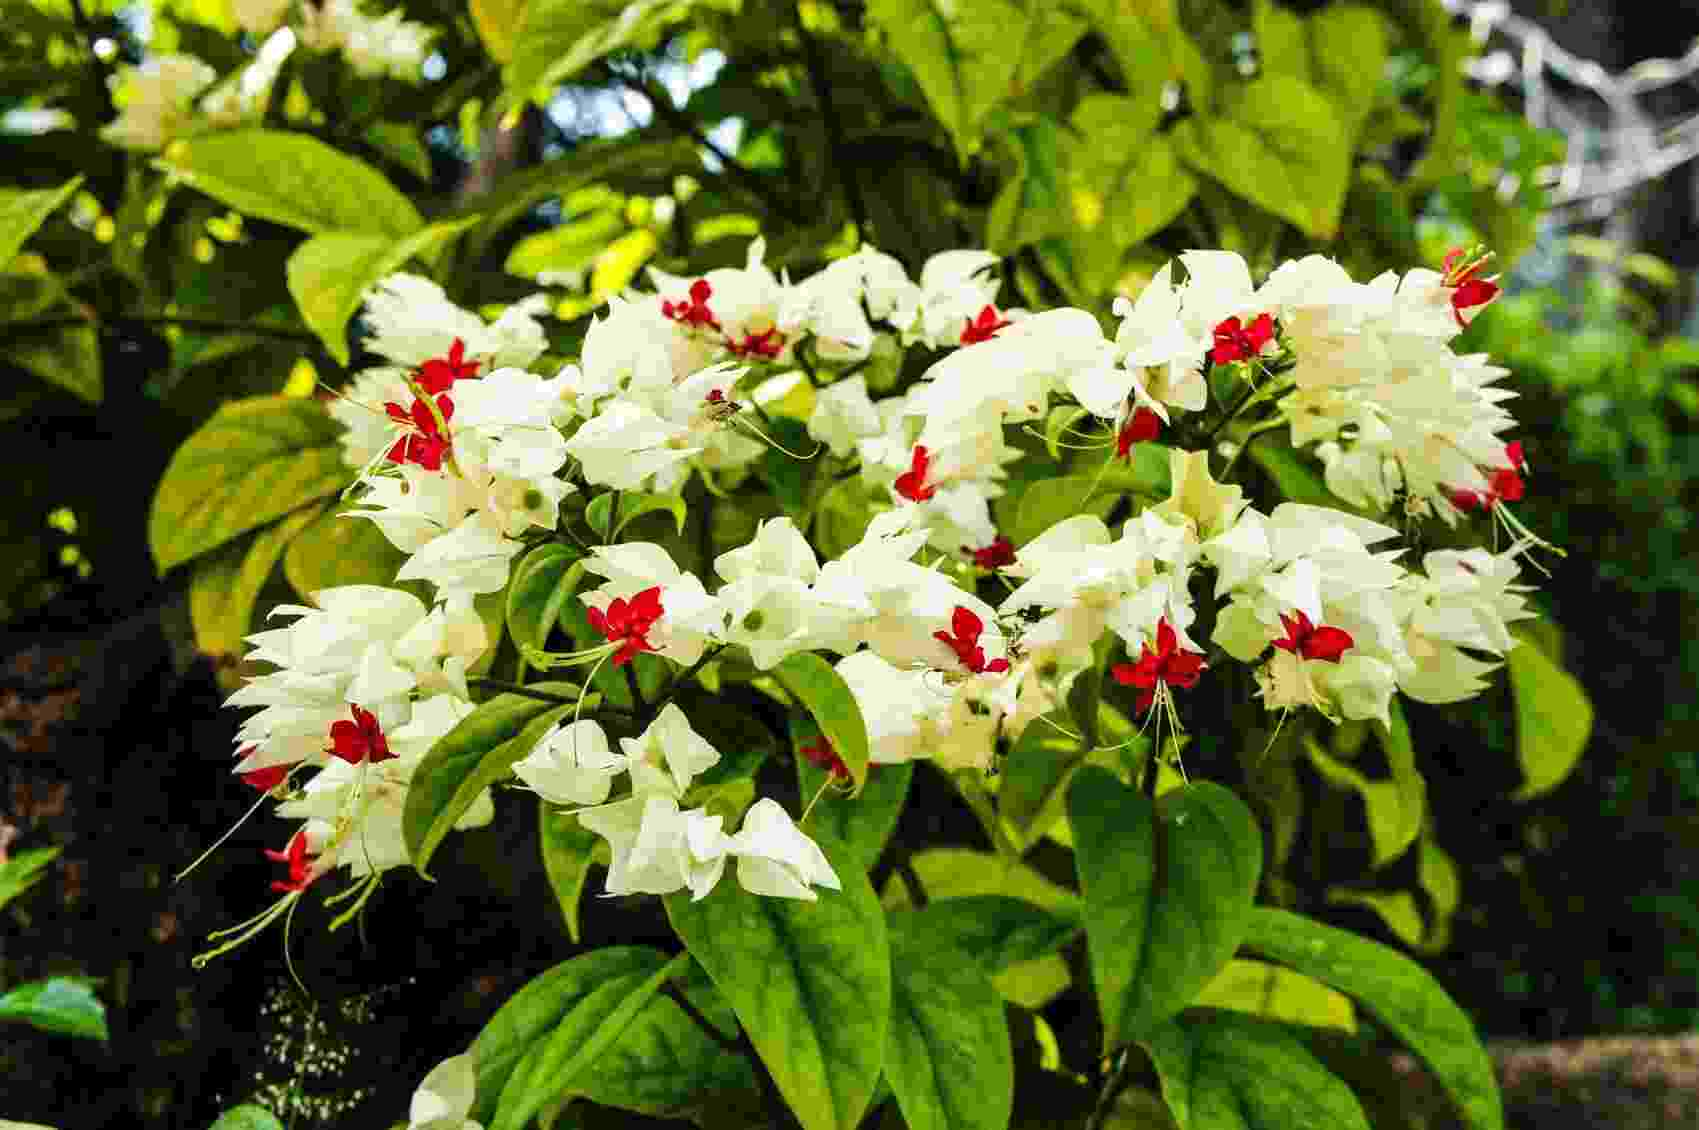 Lágrima de cristo - Clerodendrum  thomsoniae - Getty Images